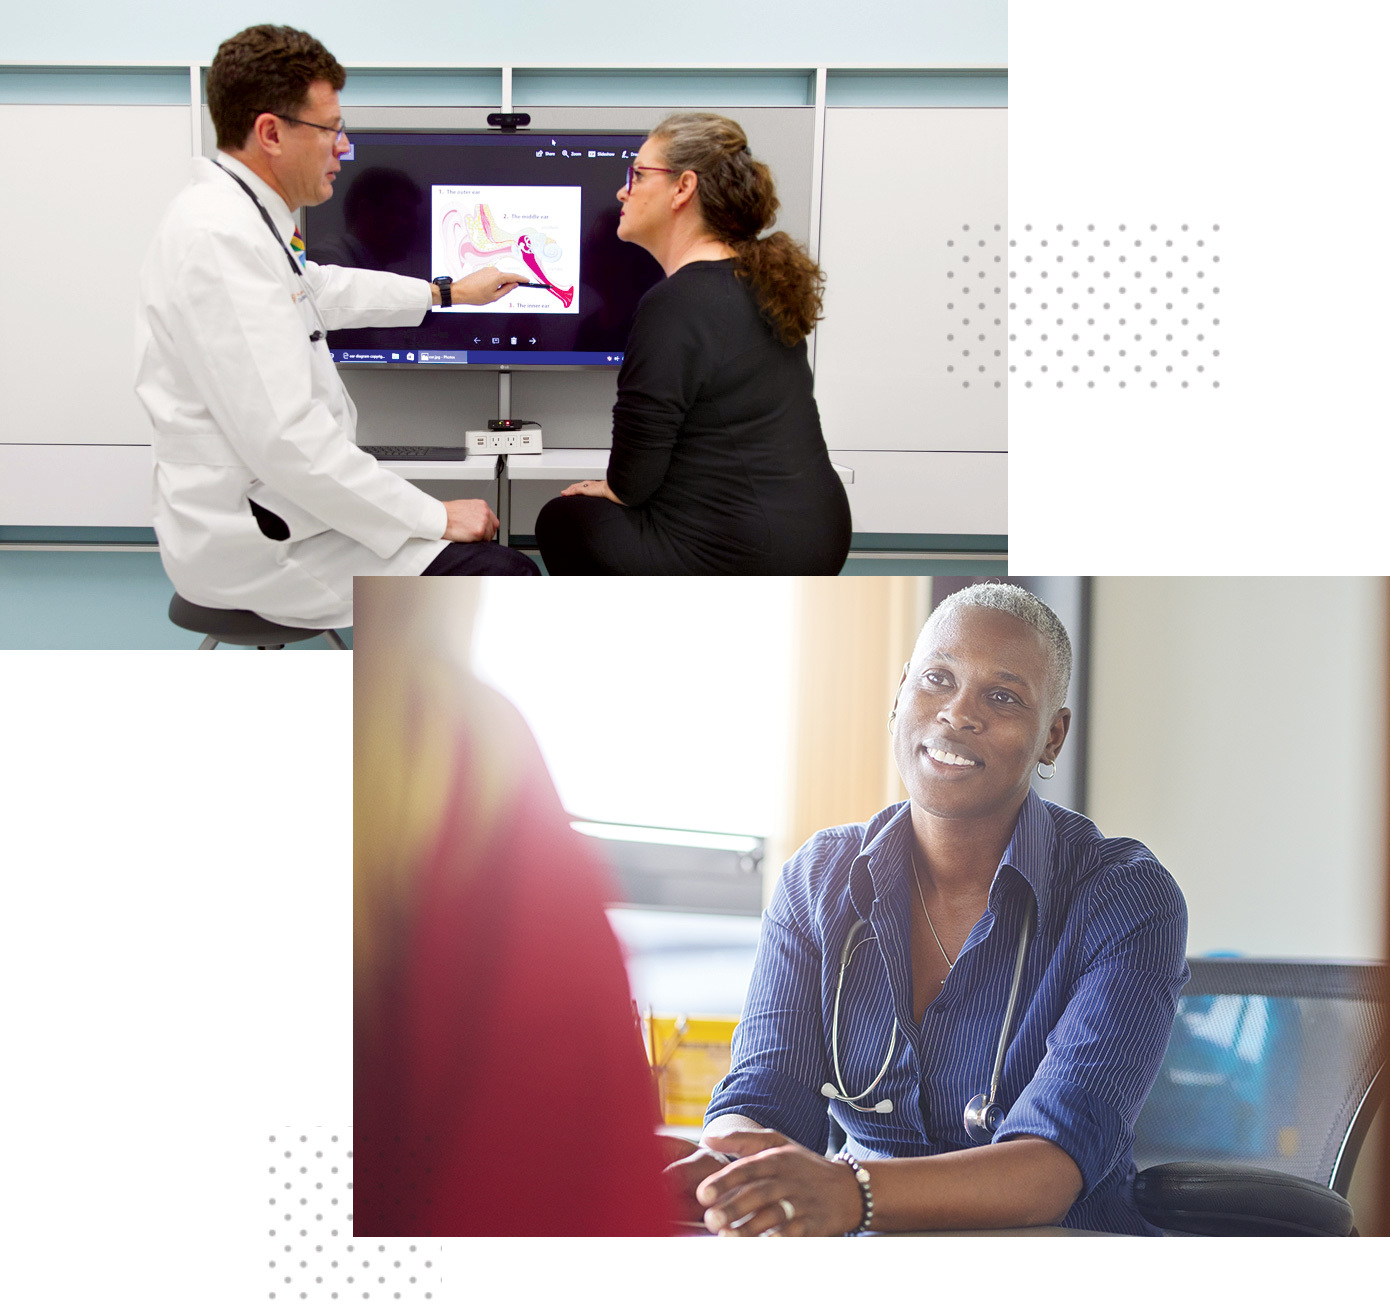 A physician explaining a medical image to a patient.